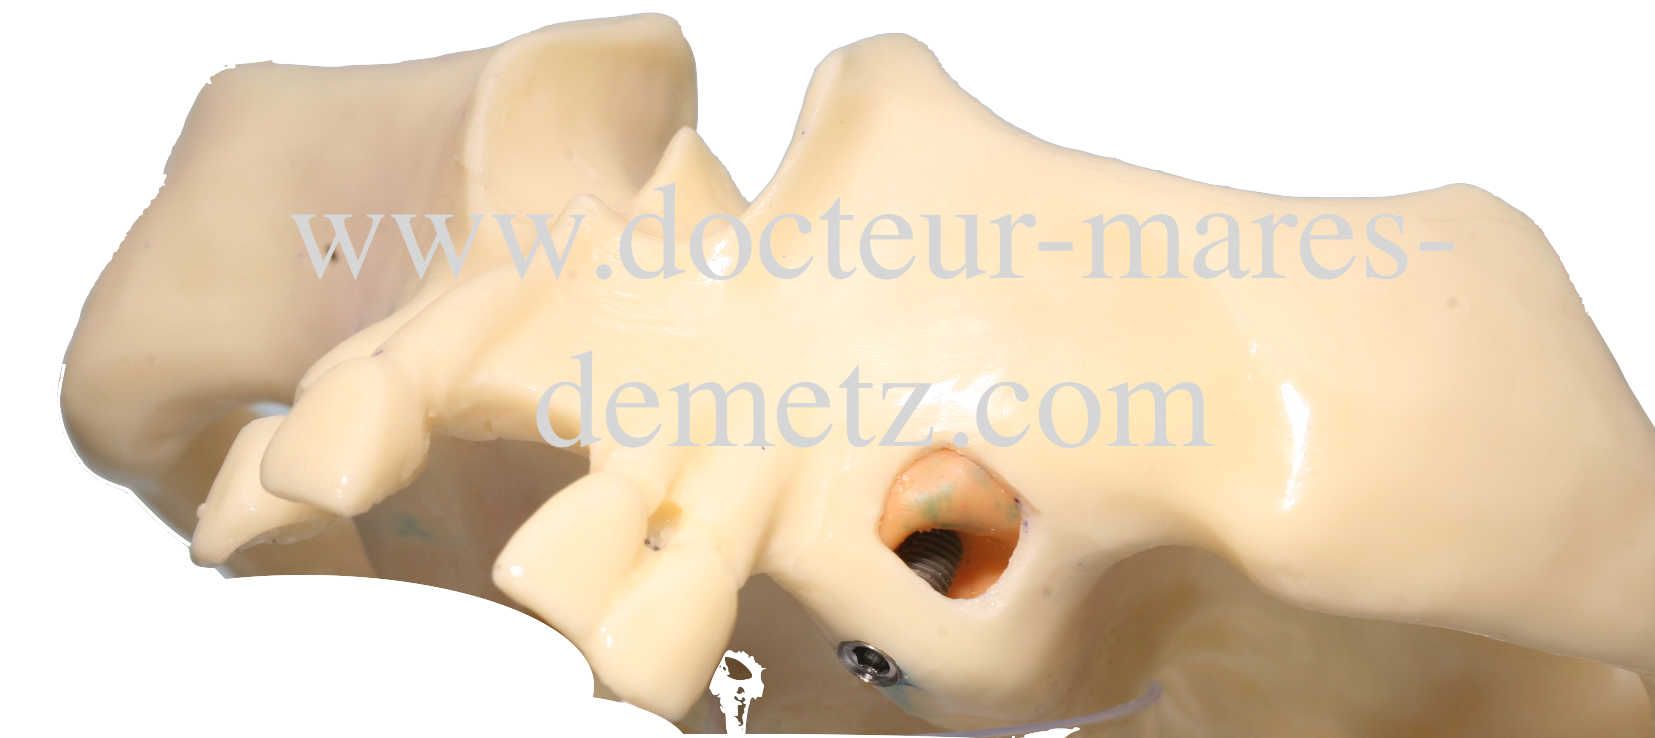 sinus lift et implant